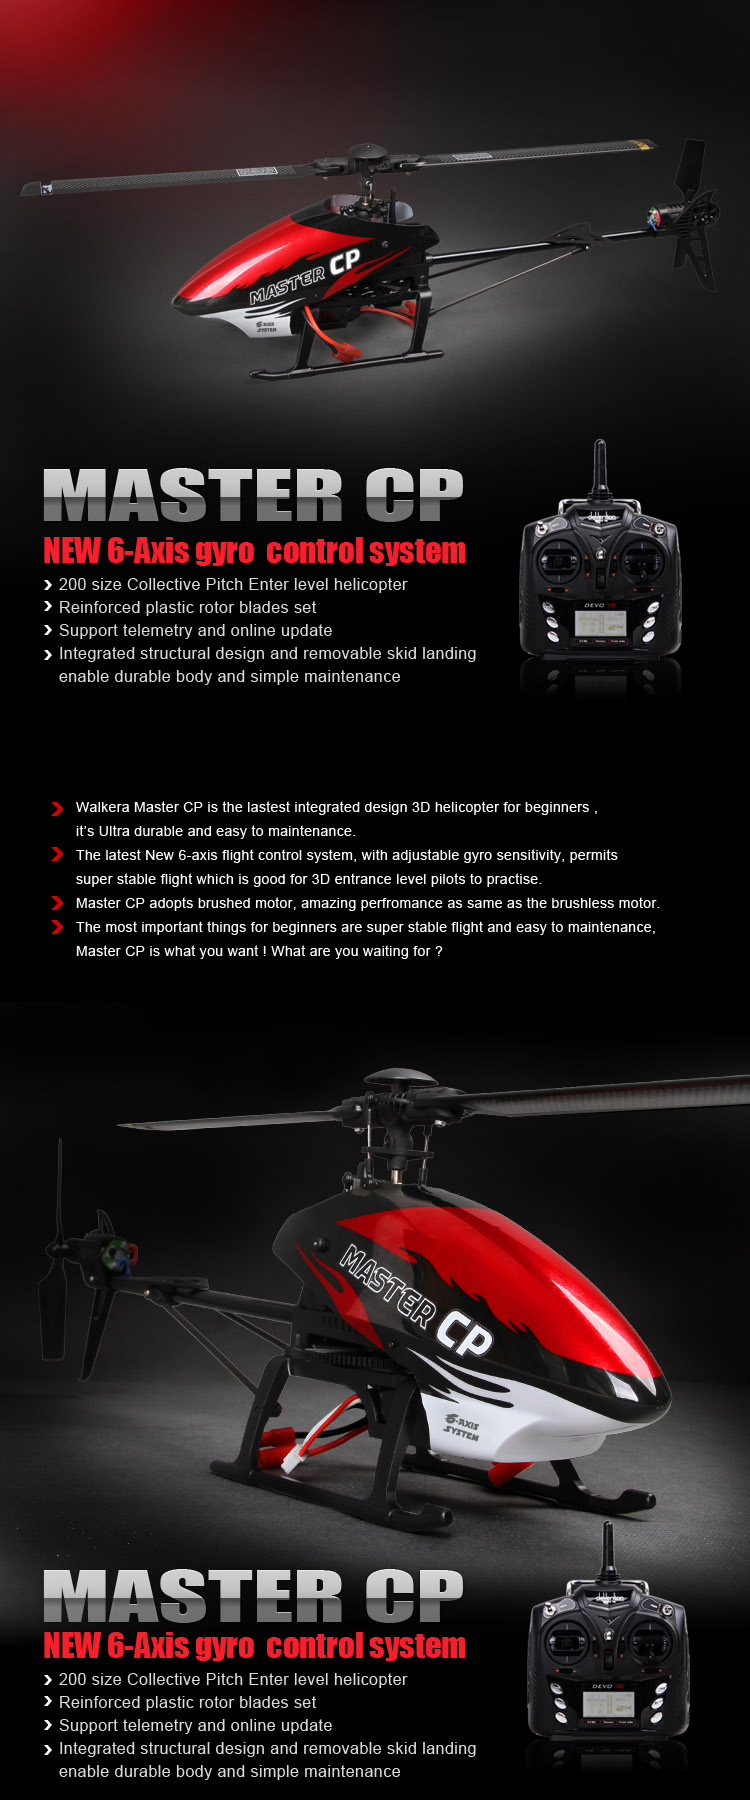 Walkera Master CP -  New 6-Axis Gyro 200 Size Collective Pitch Entery Level Helicopter Devo 7 RTF